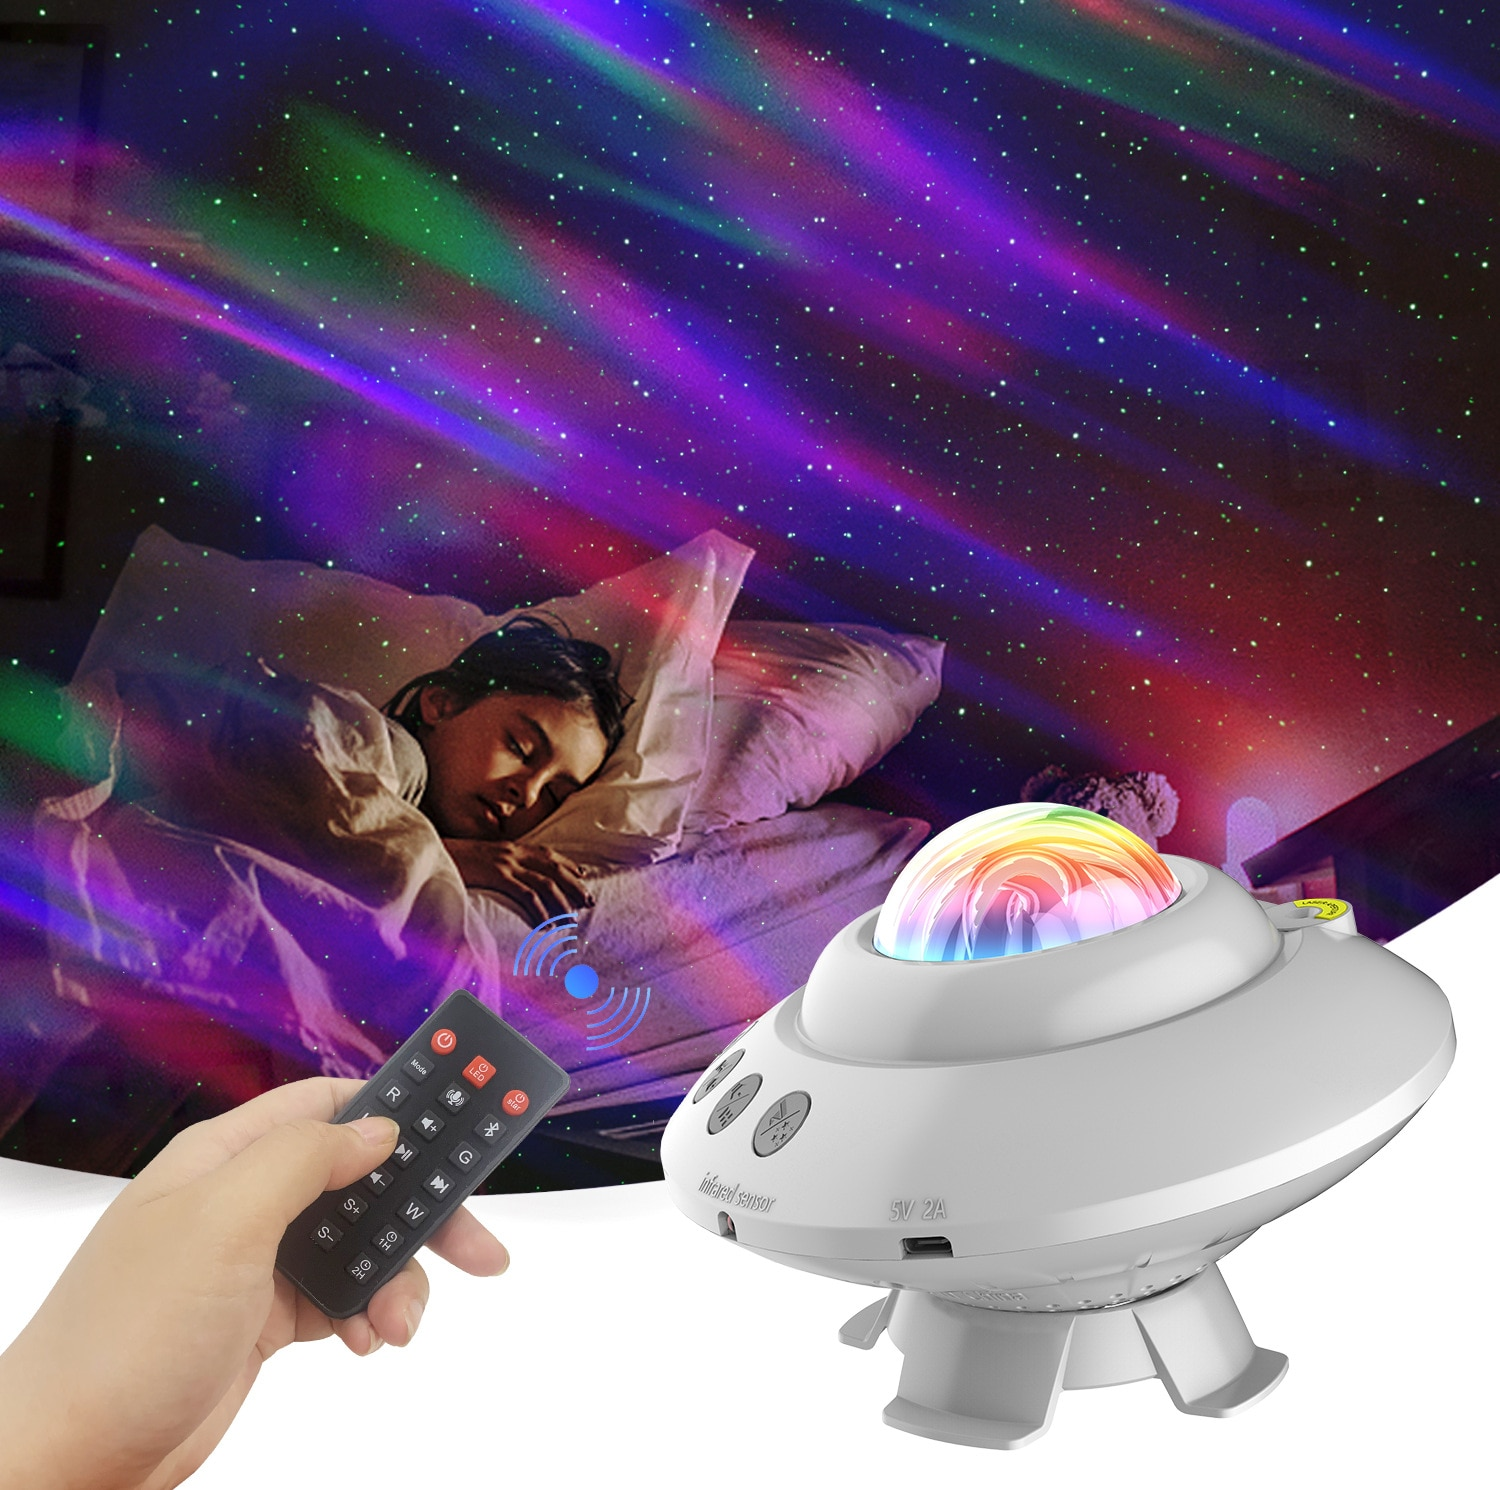 LED Star Sky Projector Atmosphere Lamp Northern Lights Night Light Decor Room Decoration Bedroom Lamp Gifts Sleep Projector Lamp